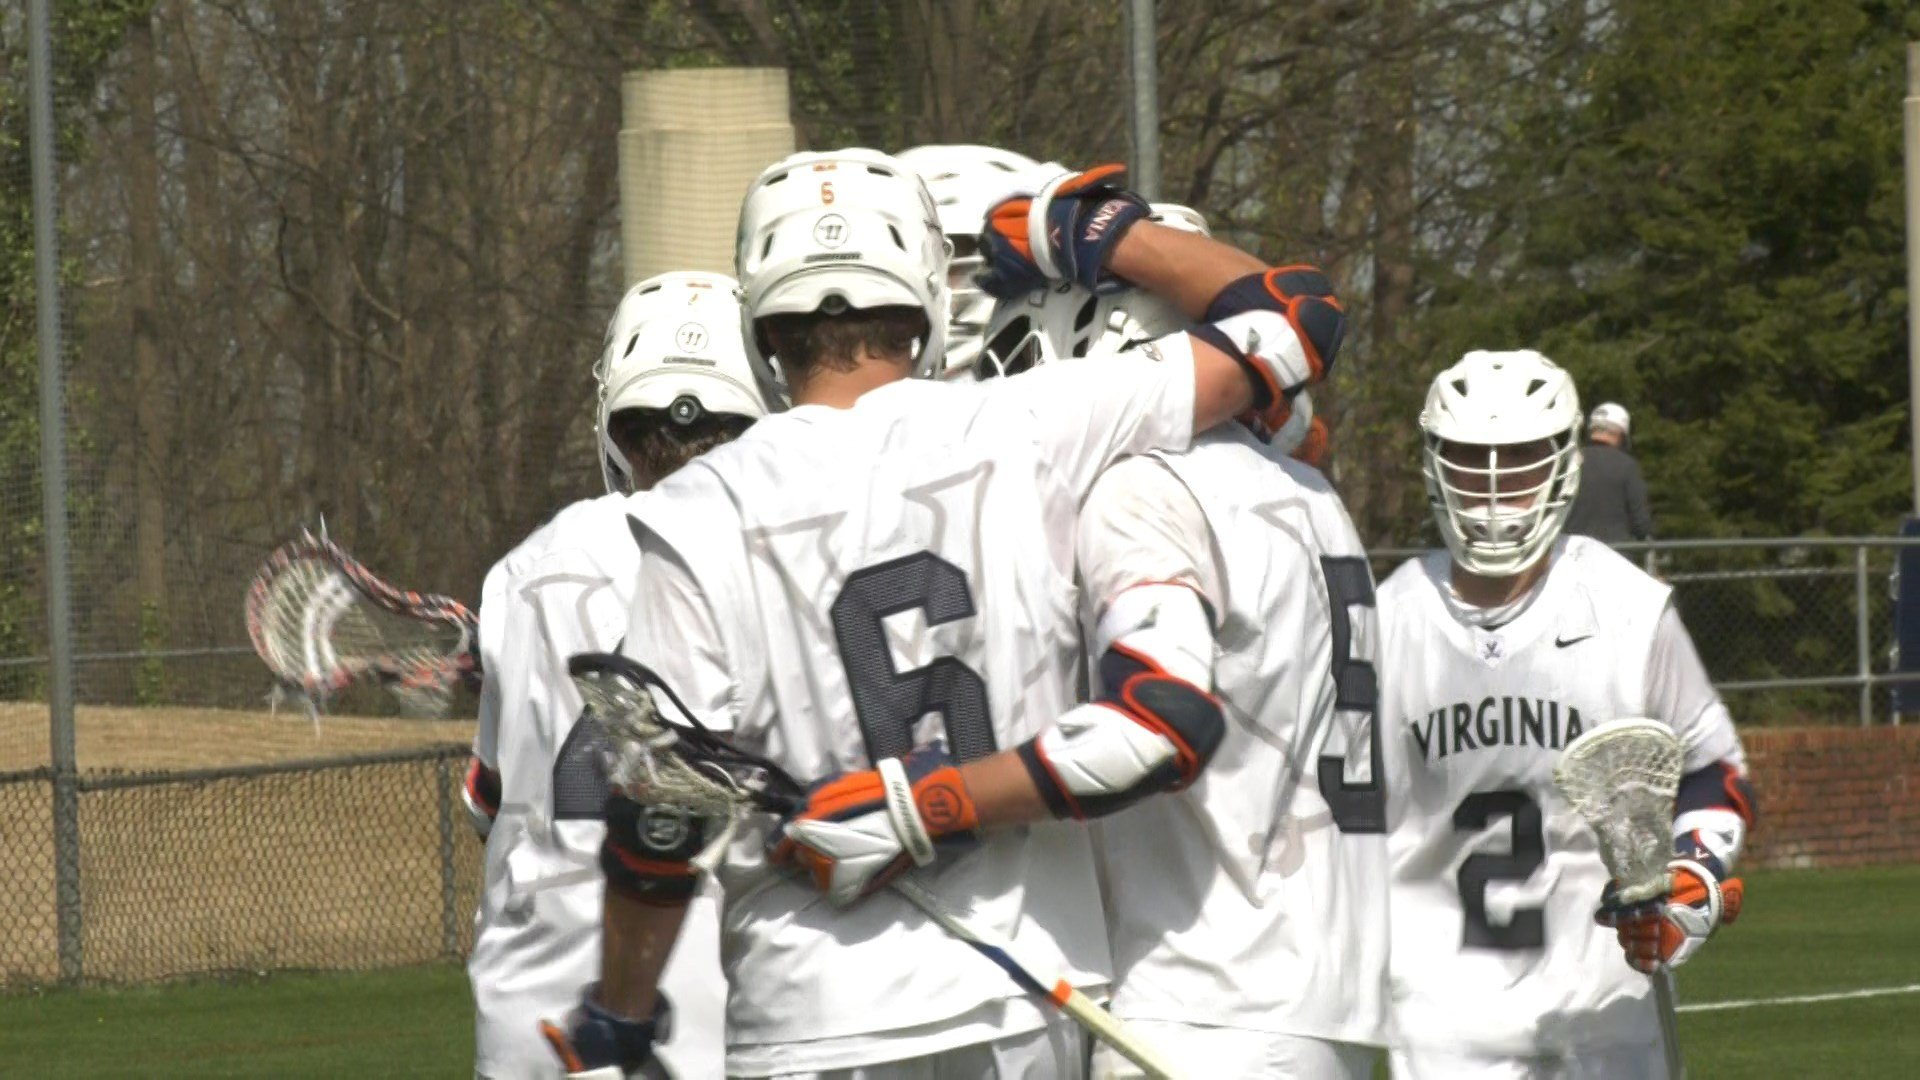 UVA Men's Lacrosse is 3-Seed for NCAA Tournament, Hosts Robert Morris in First Round